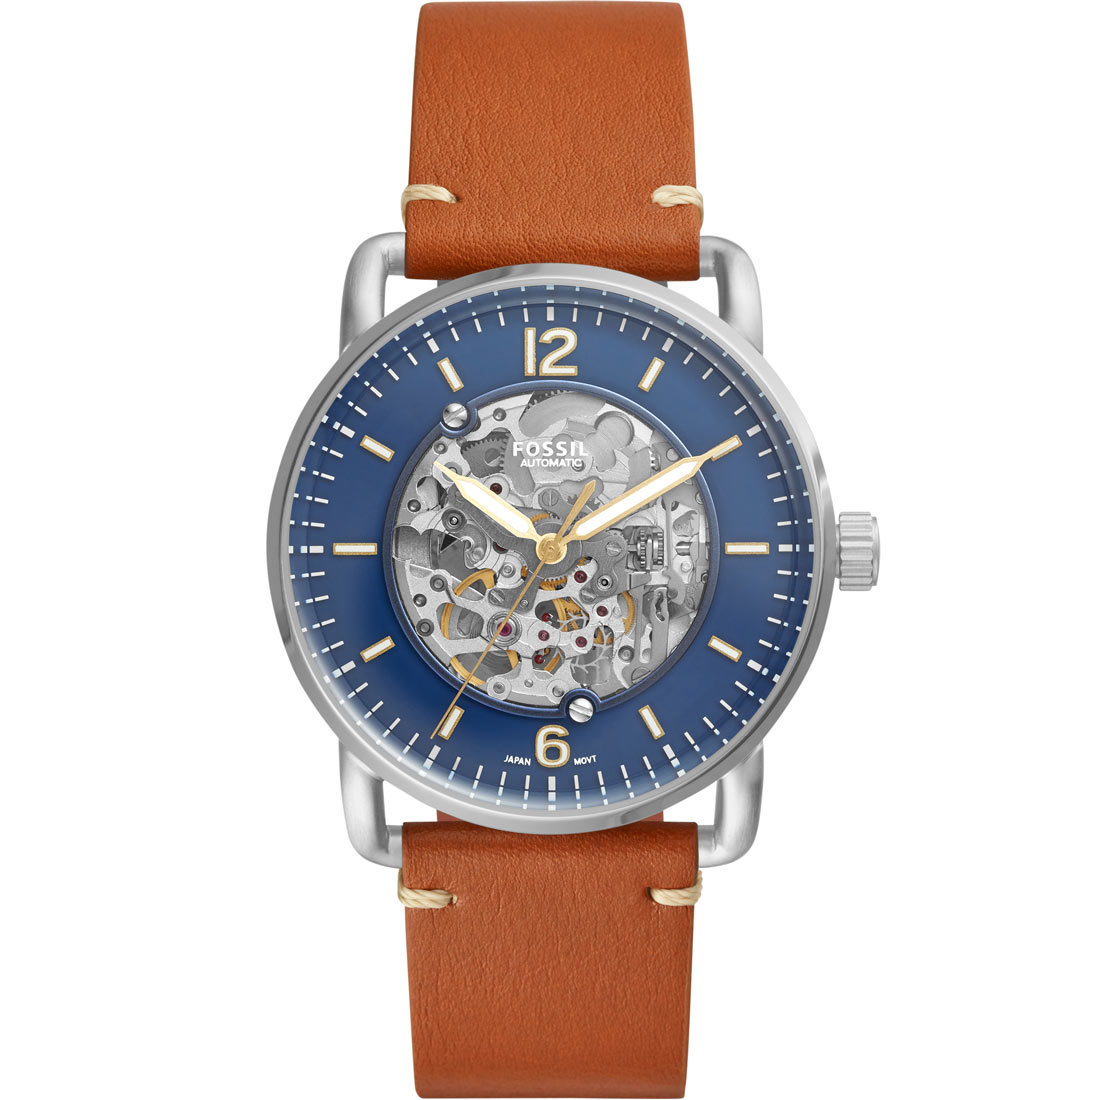 Orologio Fossil Commuter Automatic Brown Luggage Watch ME3159